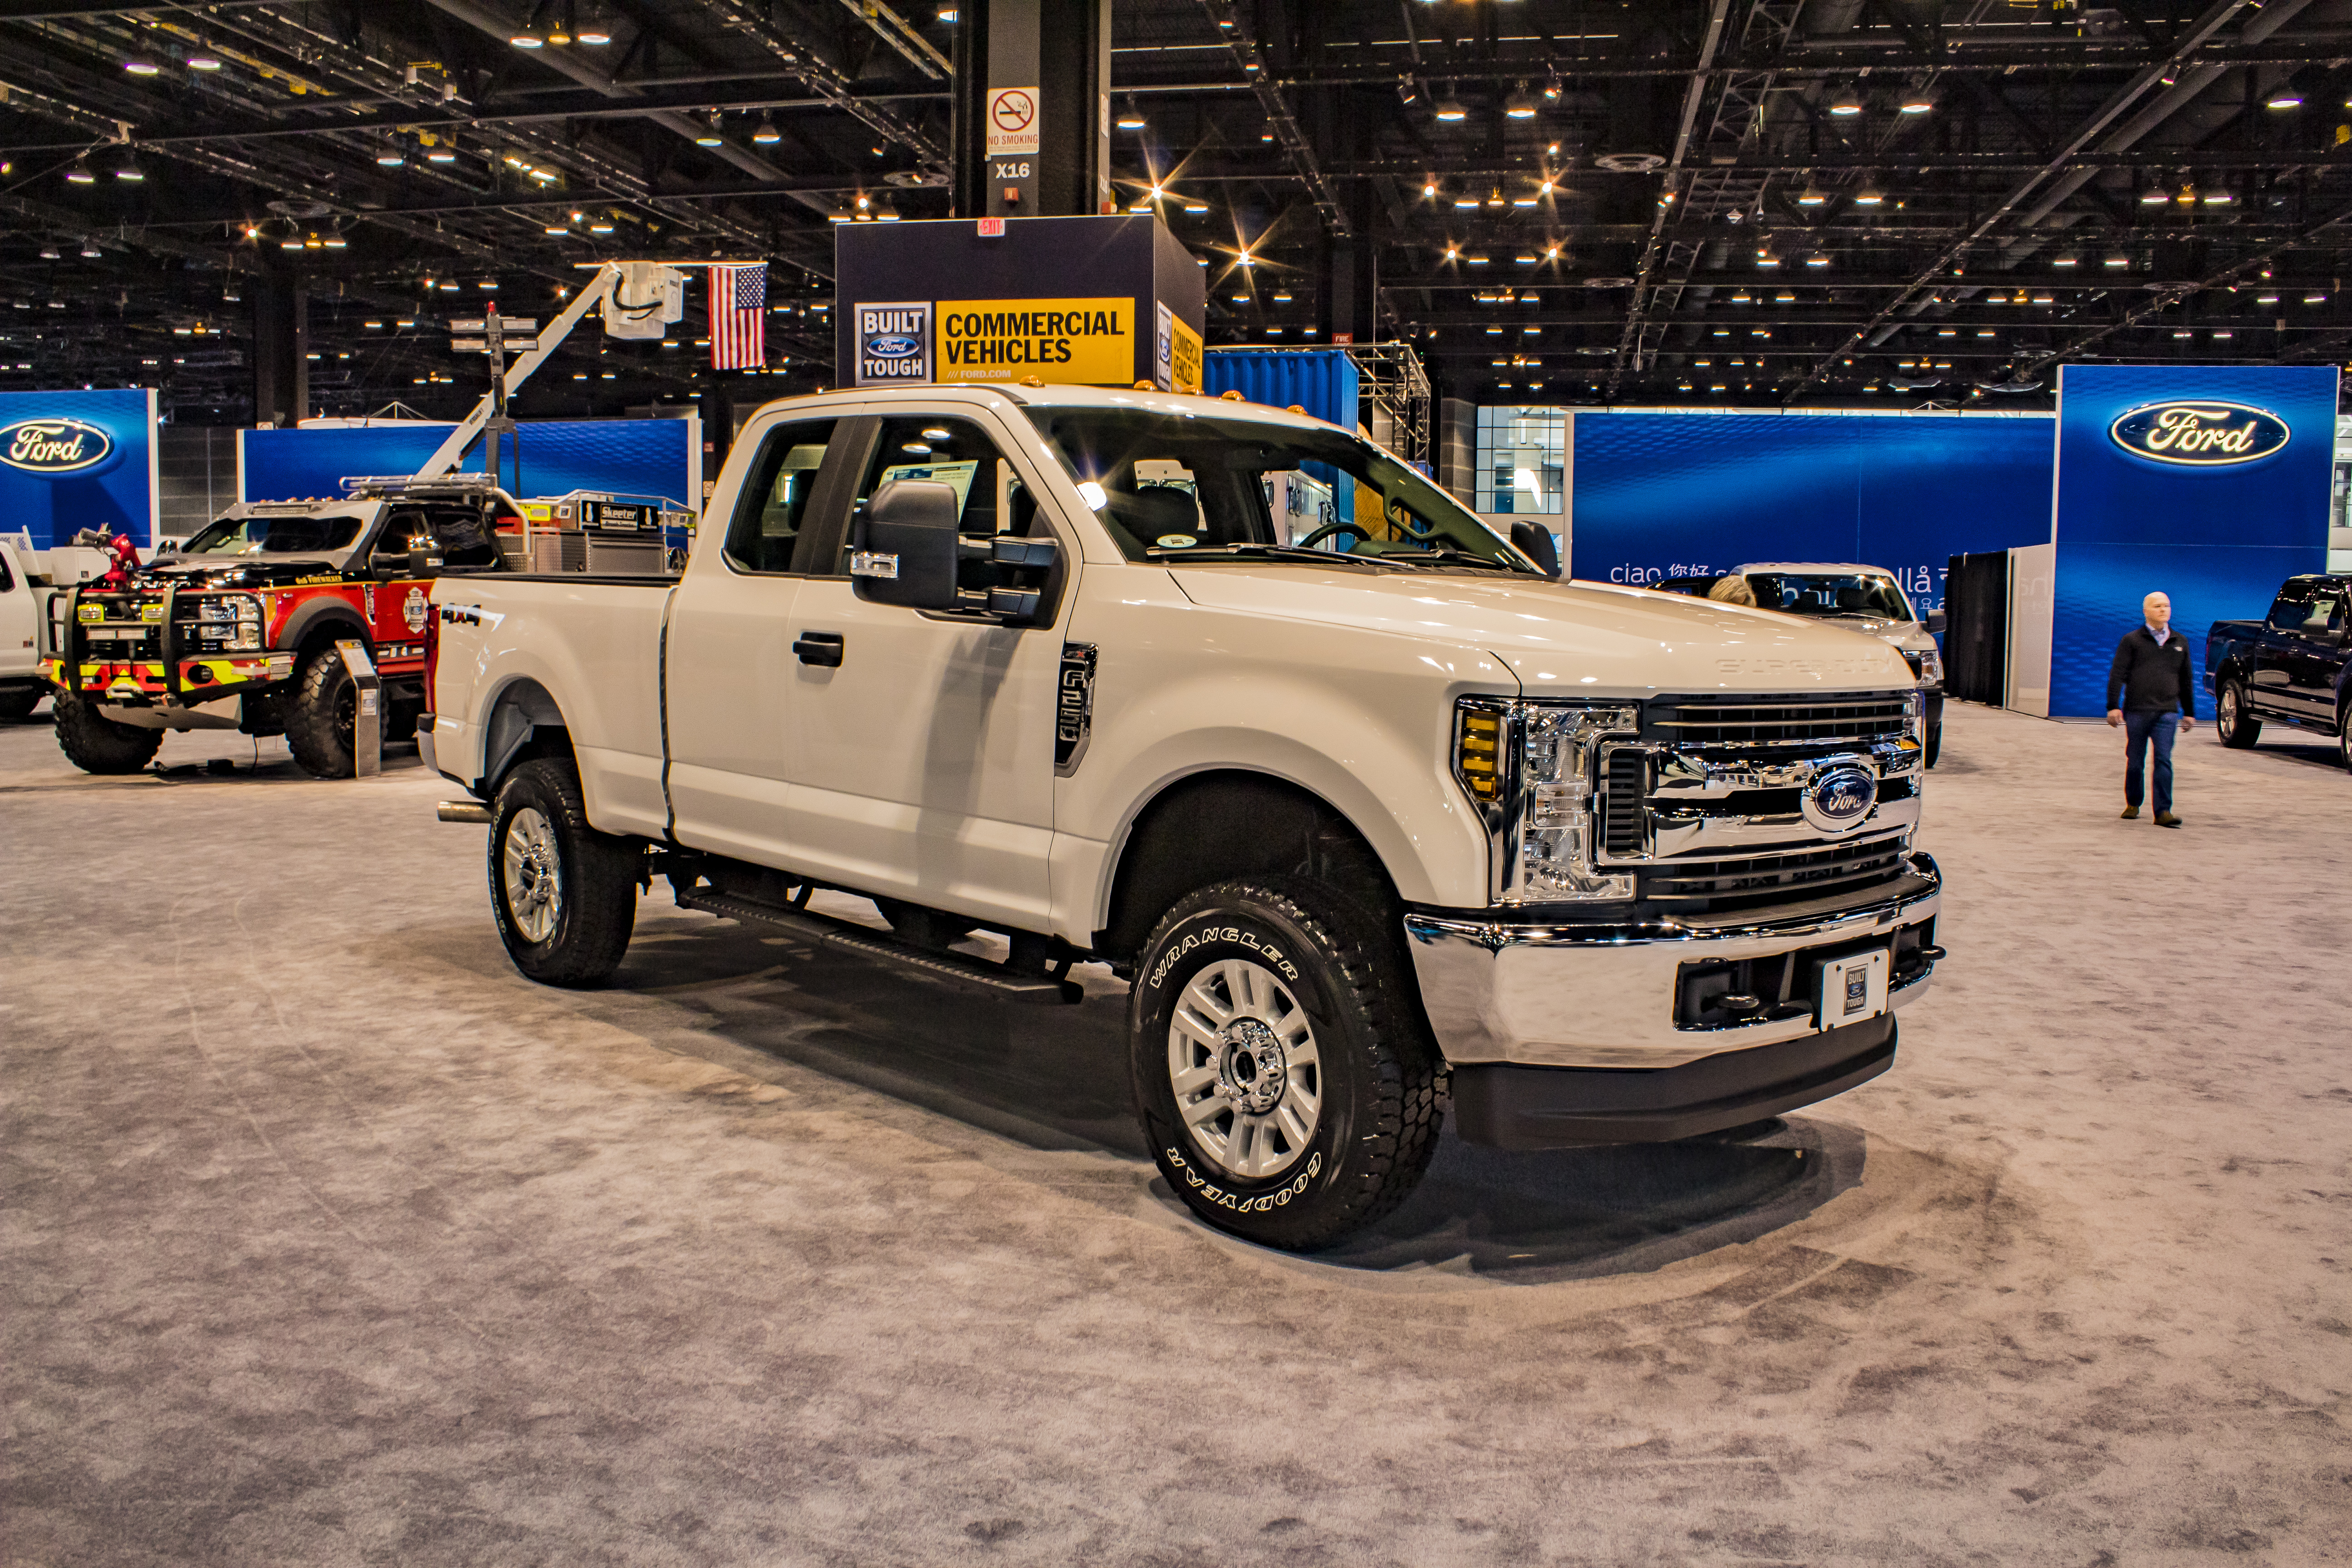 2020 Ford F-250 Concept